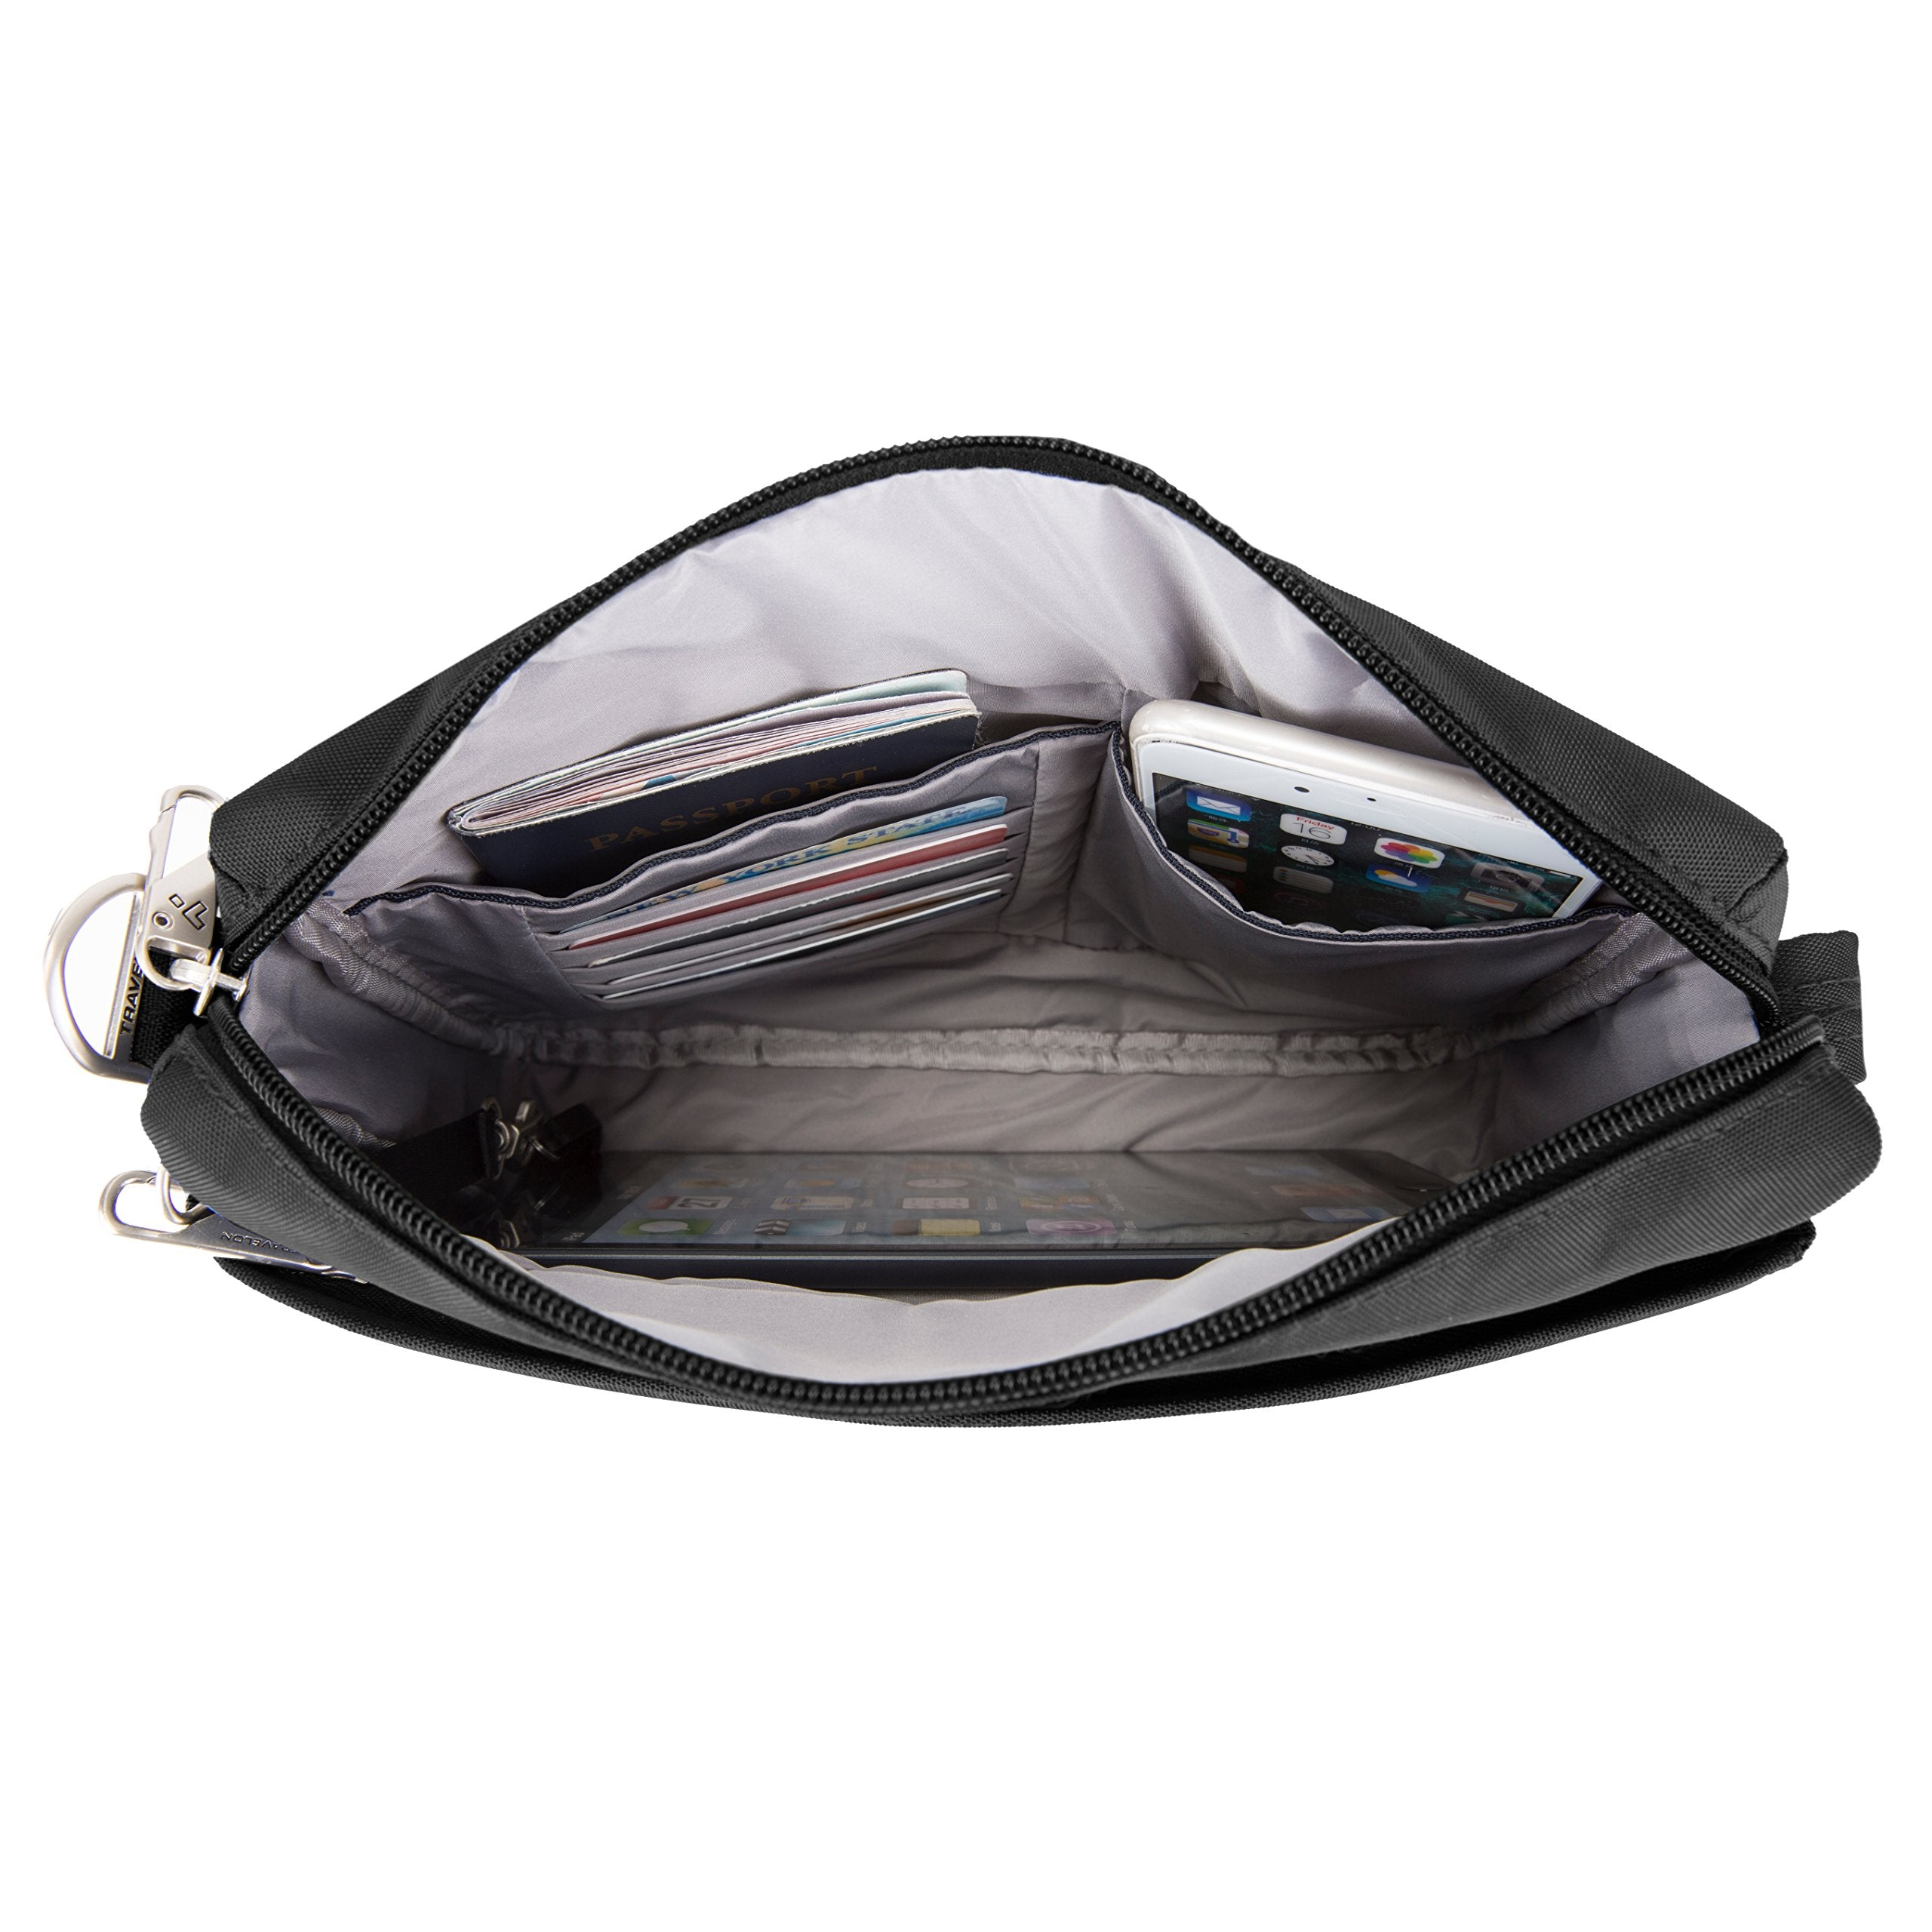 Travelon Anti-Theft Classic Small E/w Crossbody Bag, Black (Black) - 43115 500 - yrGear Australia